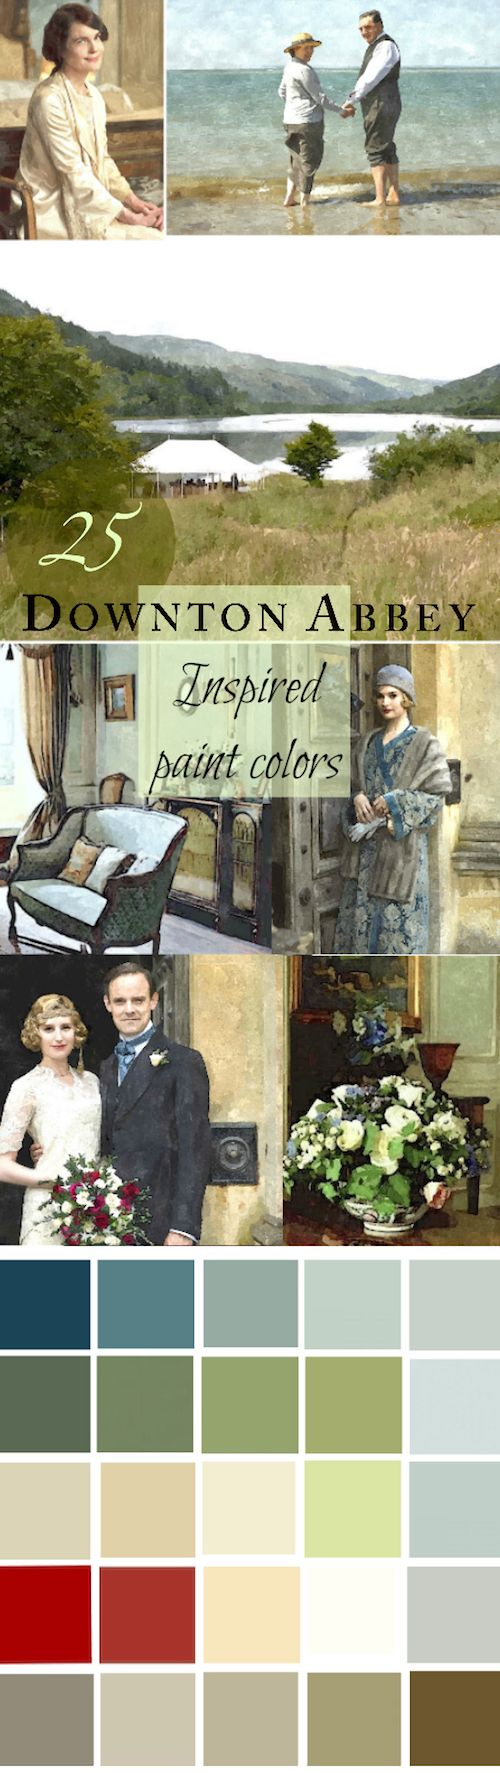 A 25-Color Whole House Paint Palette | you can mix and match the colors or just find inspiration to create a color scheme for your home based on scenes from Downton Abbey. A color scheme can come from anywhere! All colors from Benjamin Moore.